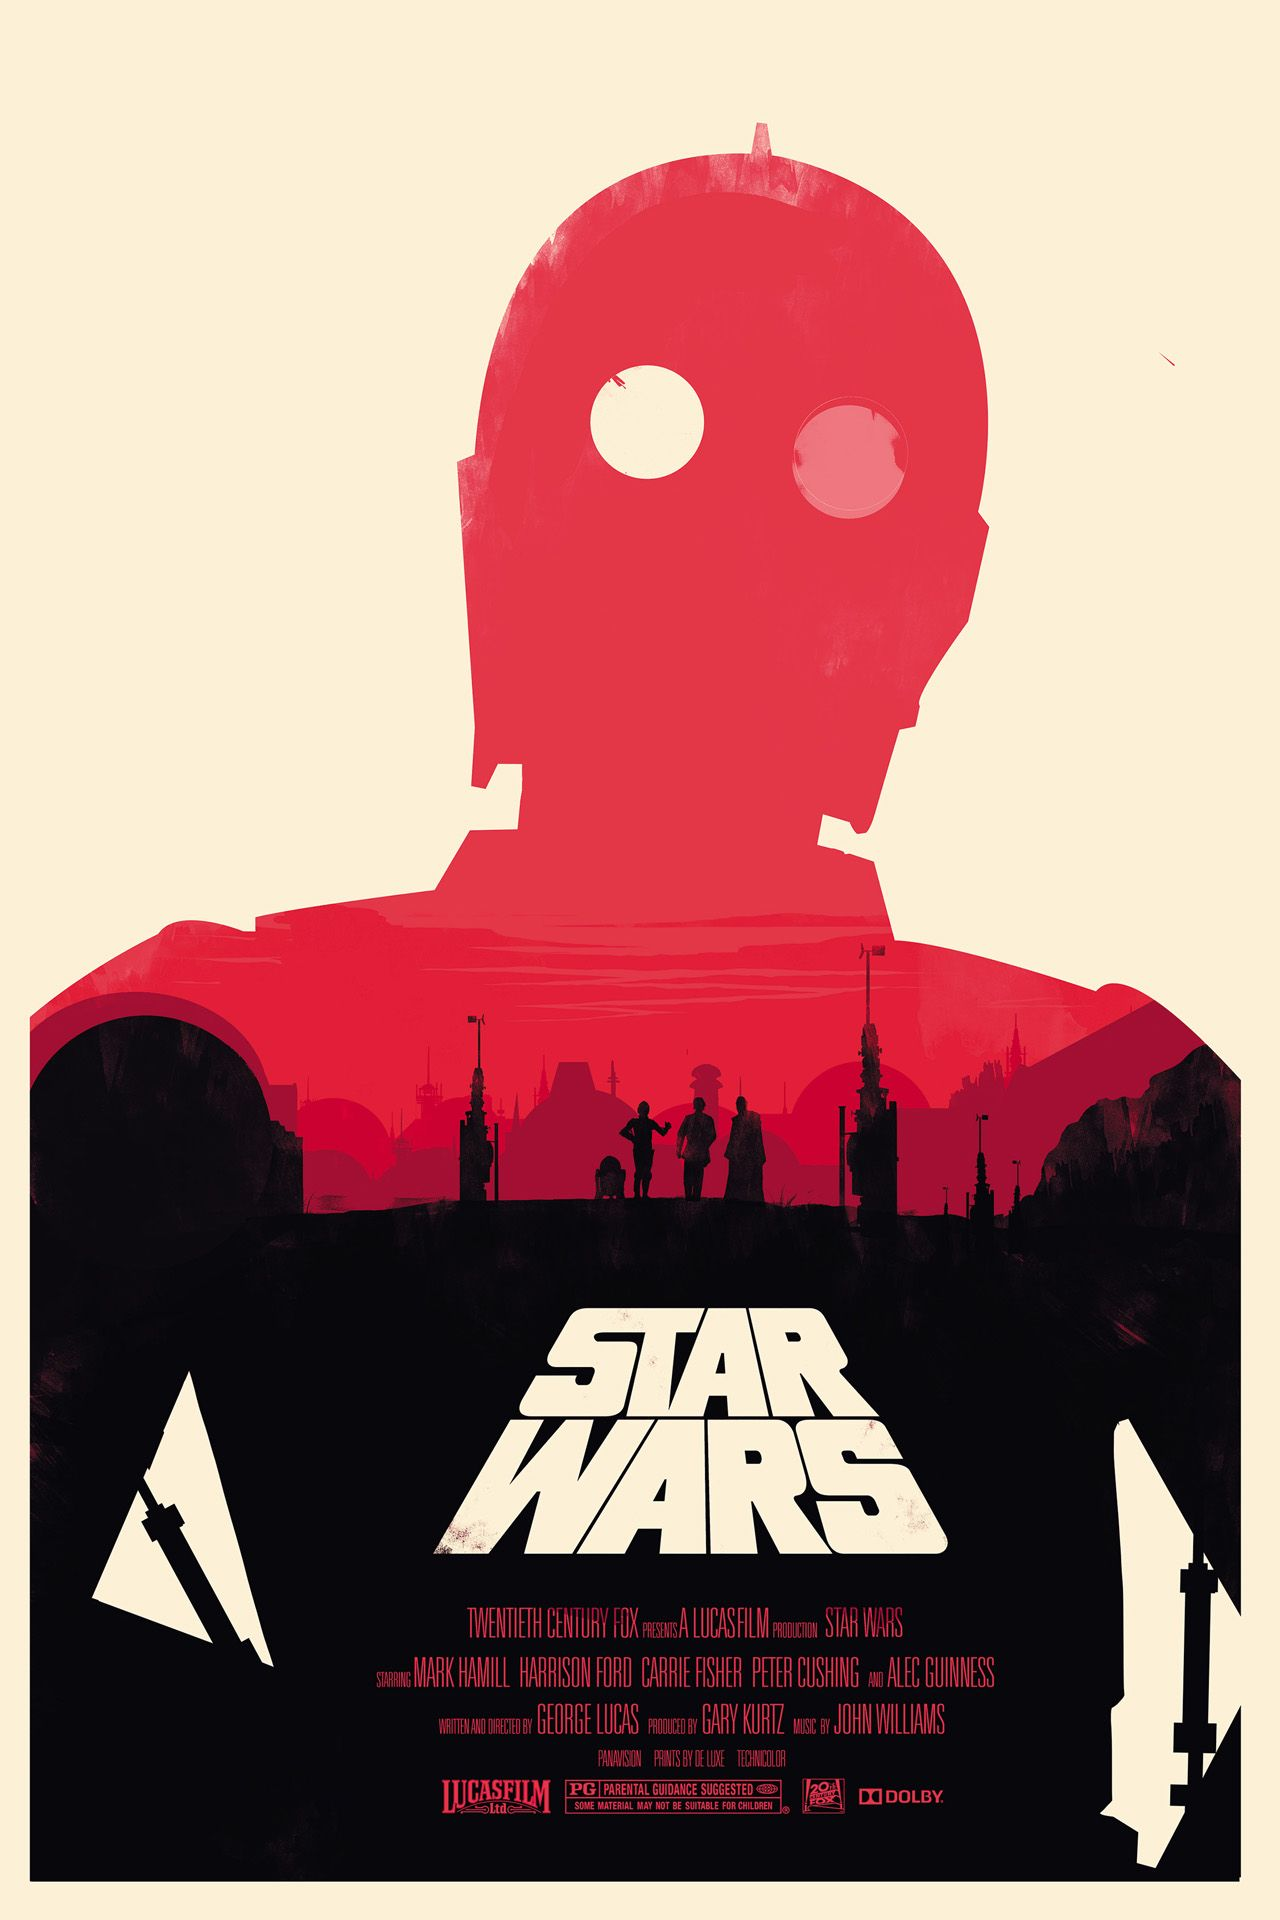 star wars art: posters - special preview | starwars | star